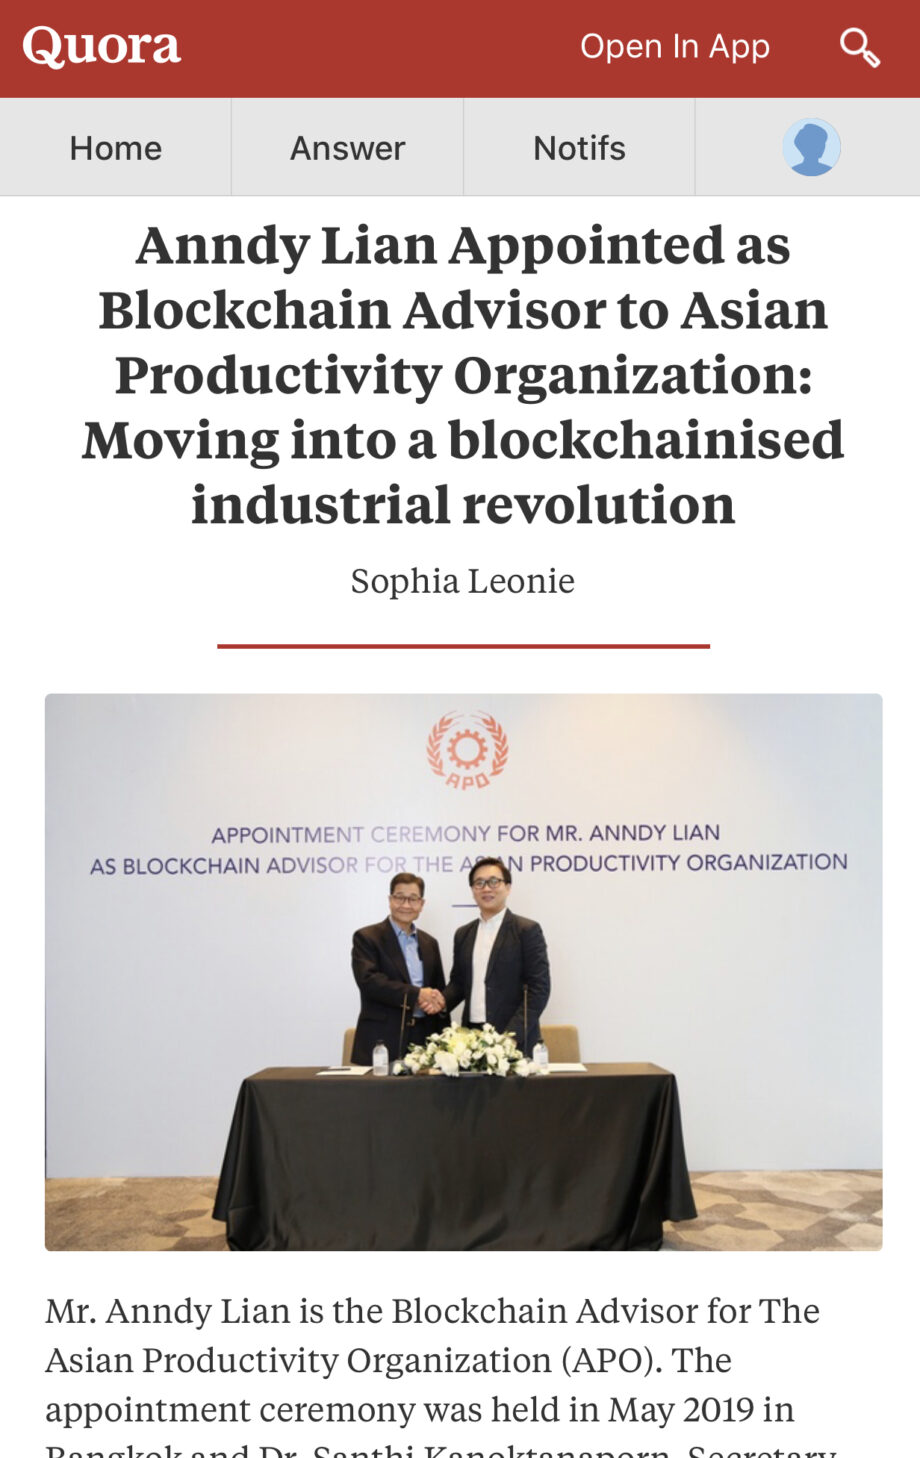 [Quora.com] Anndy Lian Appointed as Blockchain Advisor to Asian Productivity Organization: Moving into a blockchainised industrial revolution